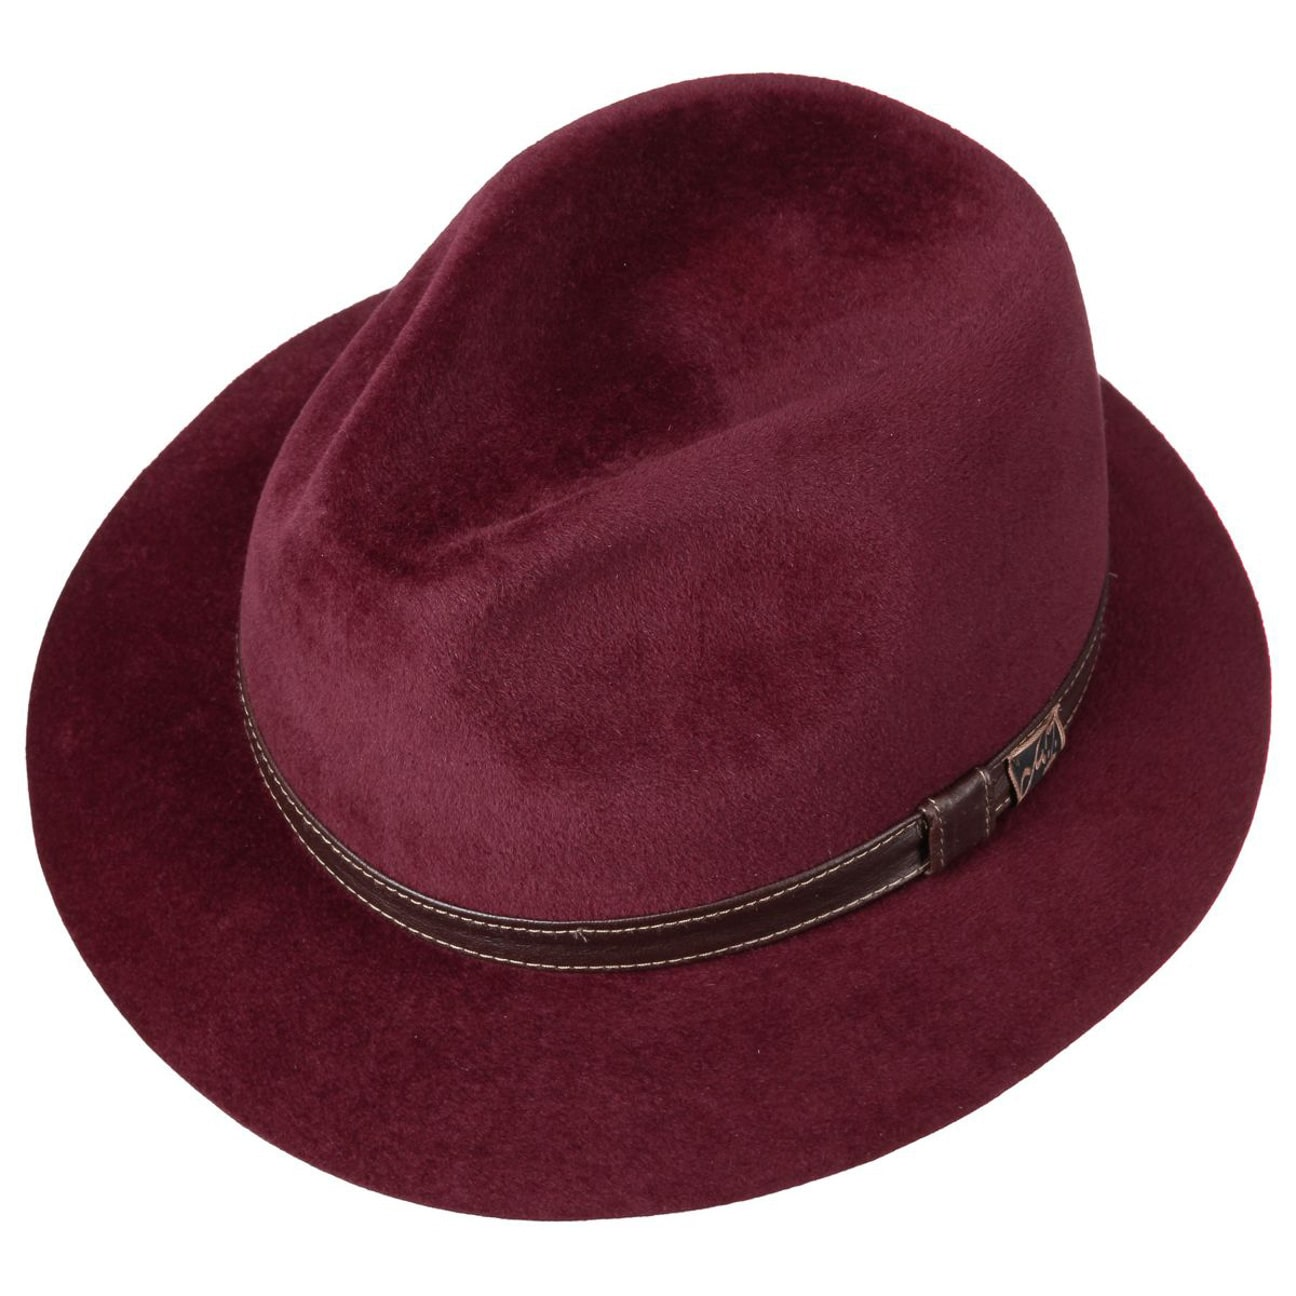 ... Ennio Velours Cappello by Mayser - rosso bordeaux 2 ... d01cdb1f0008